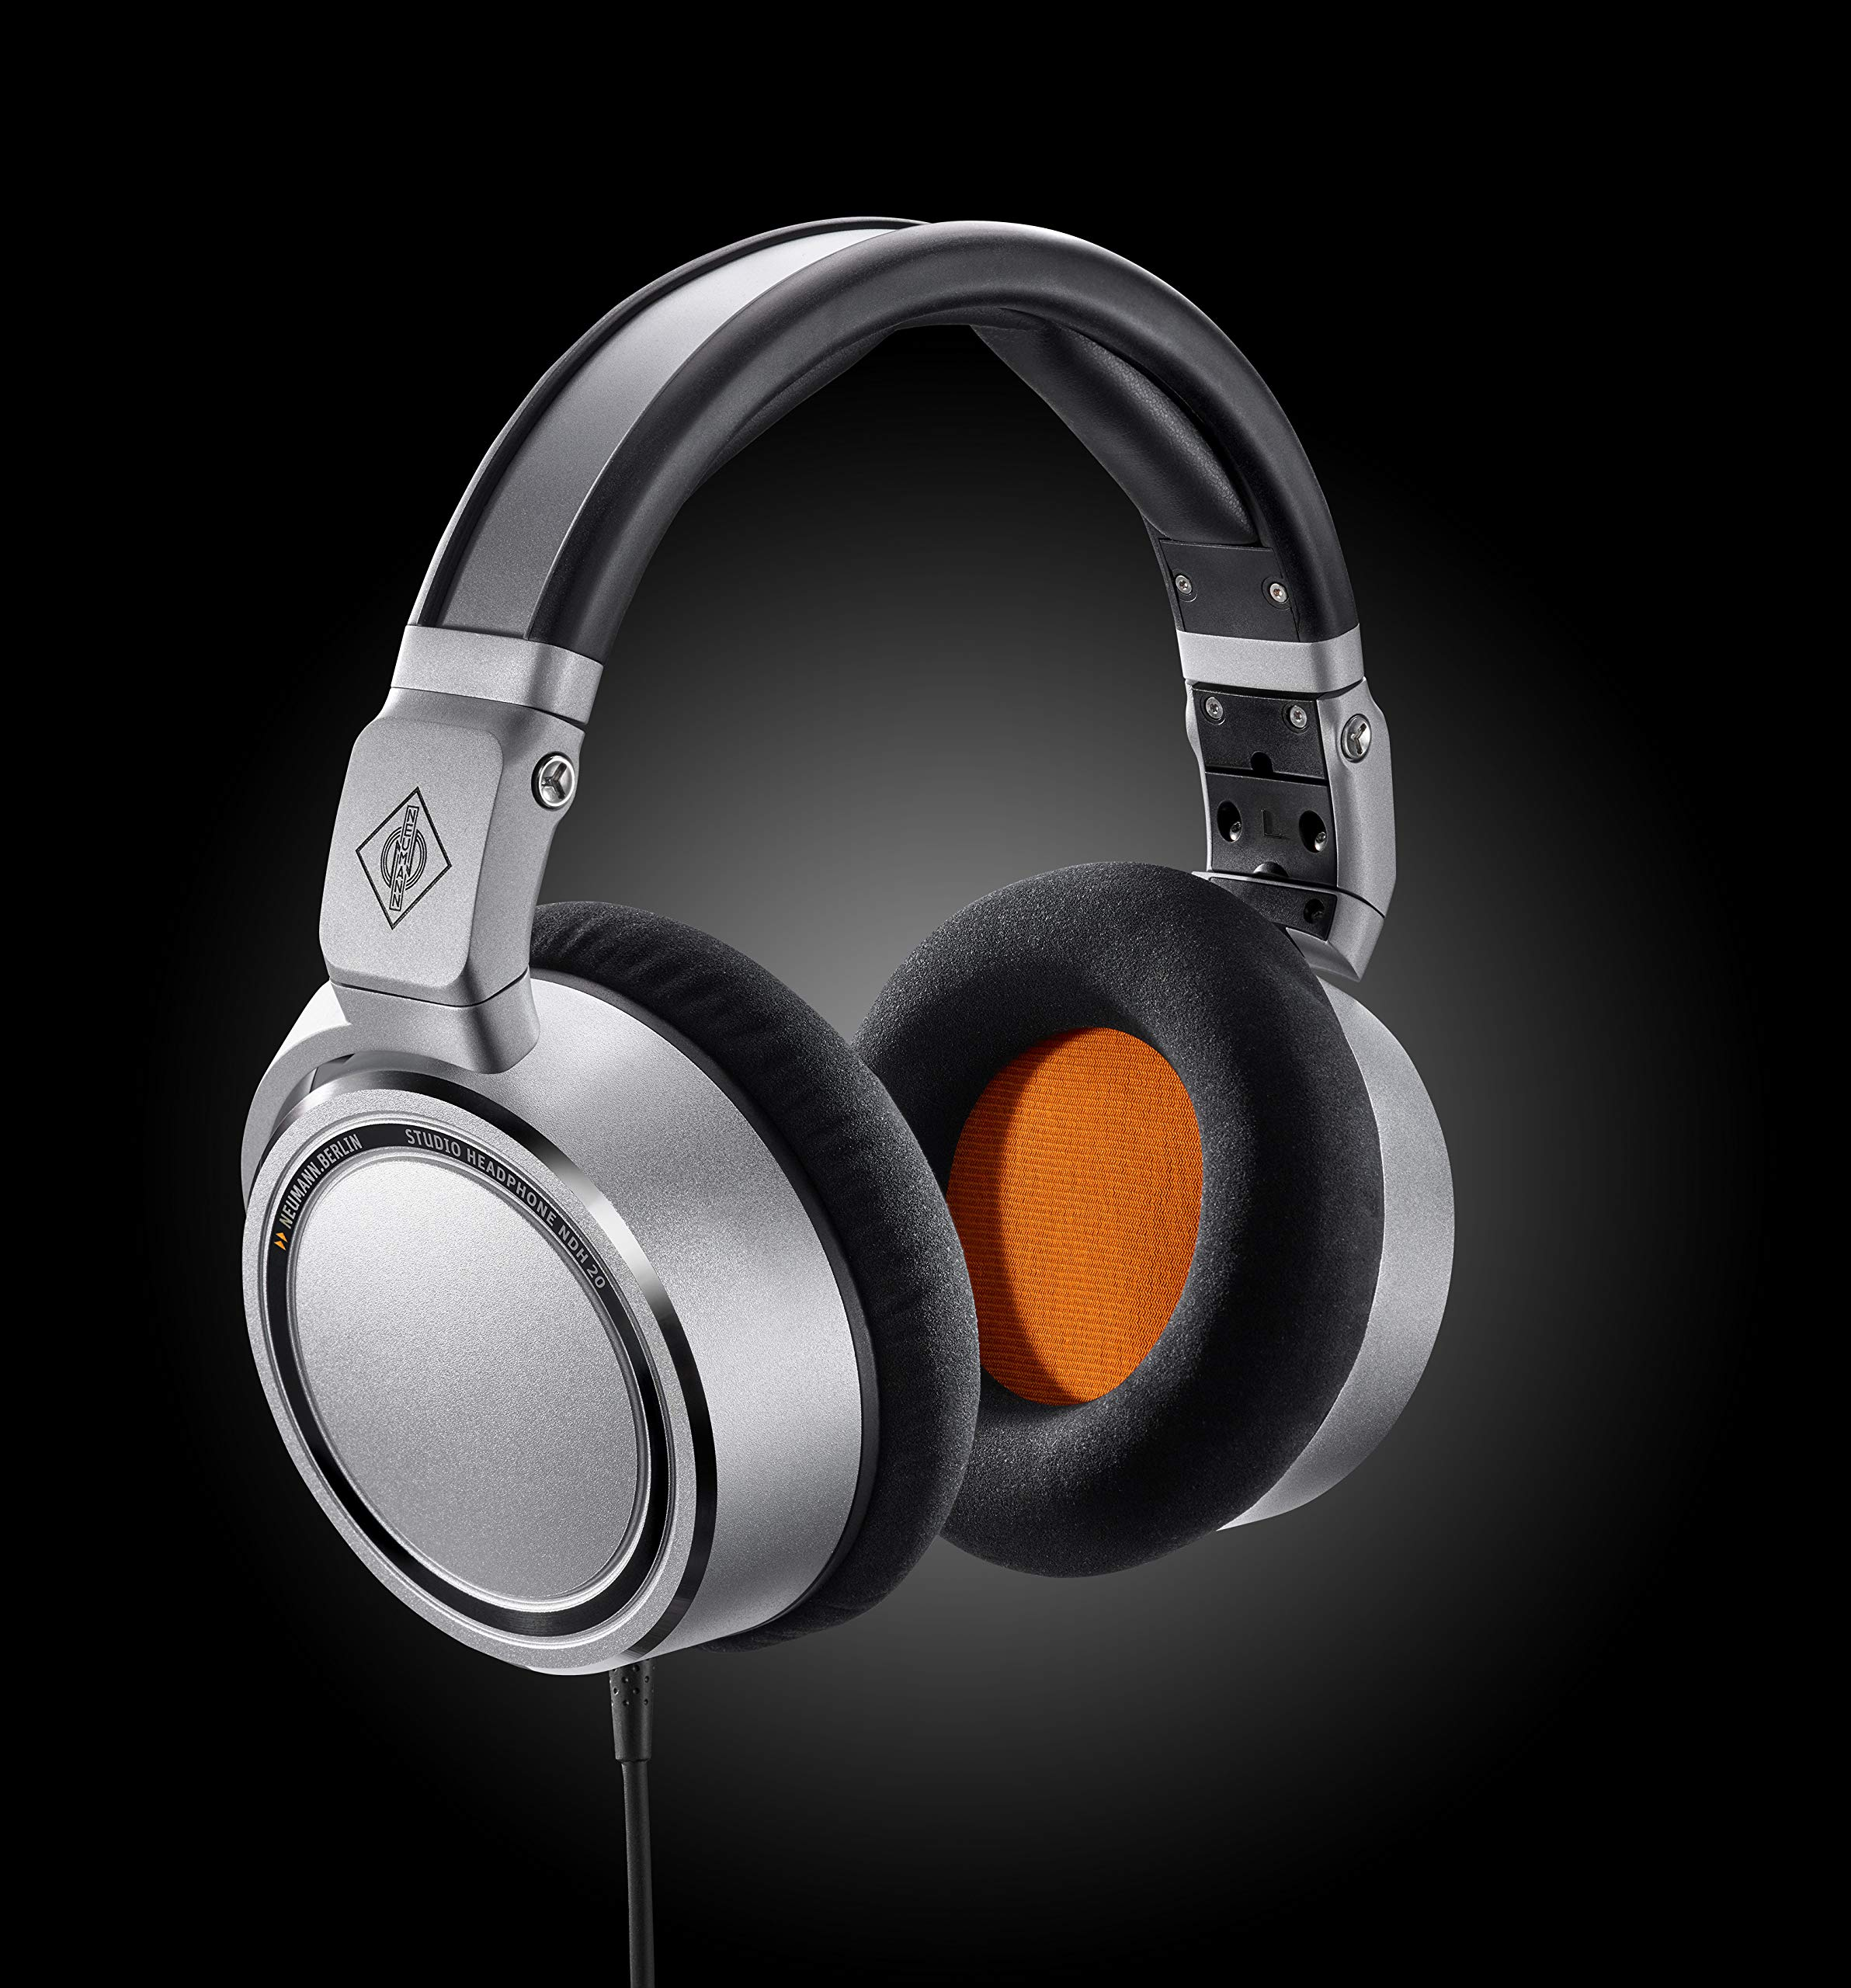 Neumann Studio Headphones (NDH 20 Closed-Back Monitoring He by Neumann (Image #1)